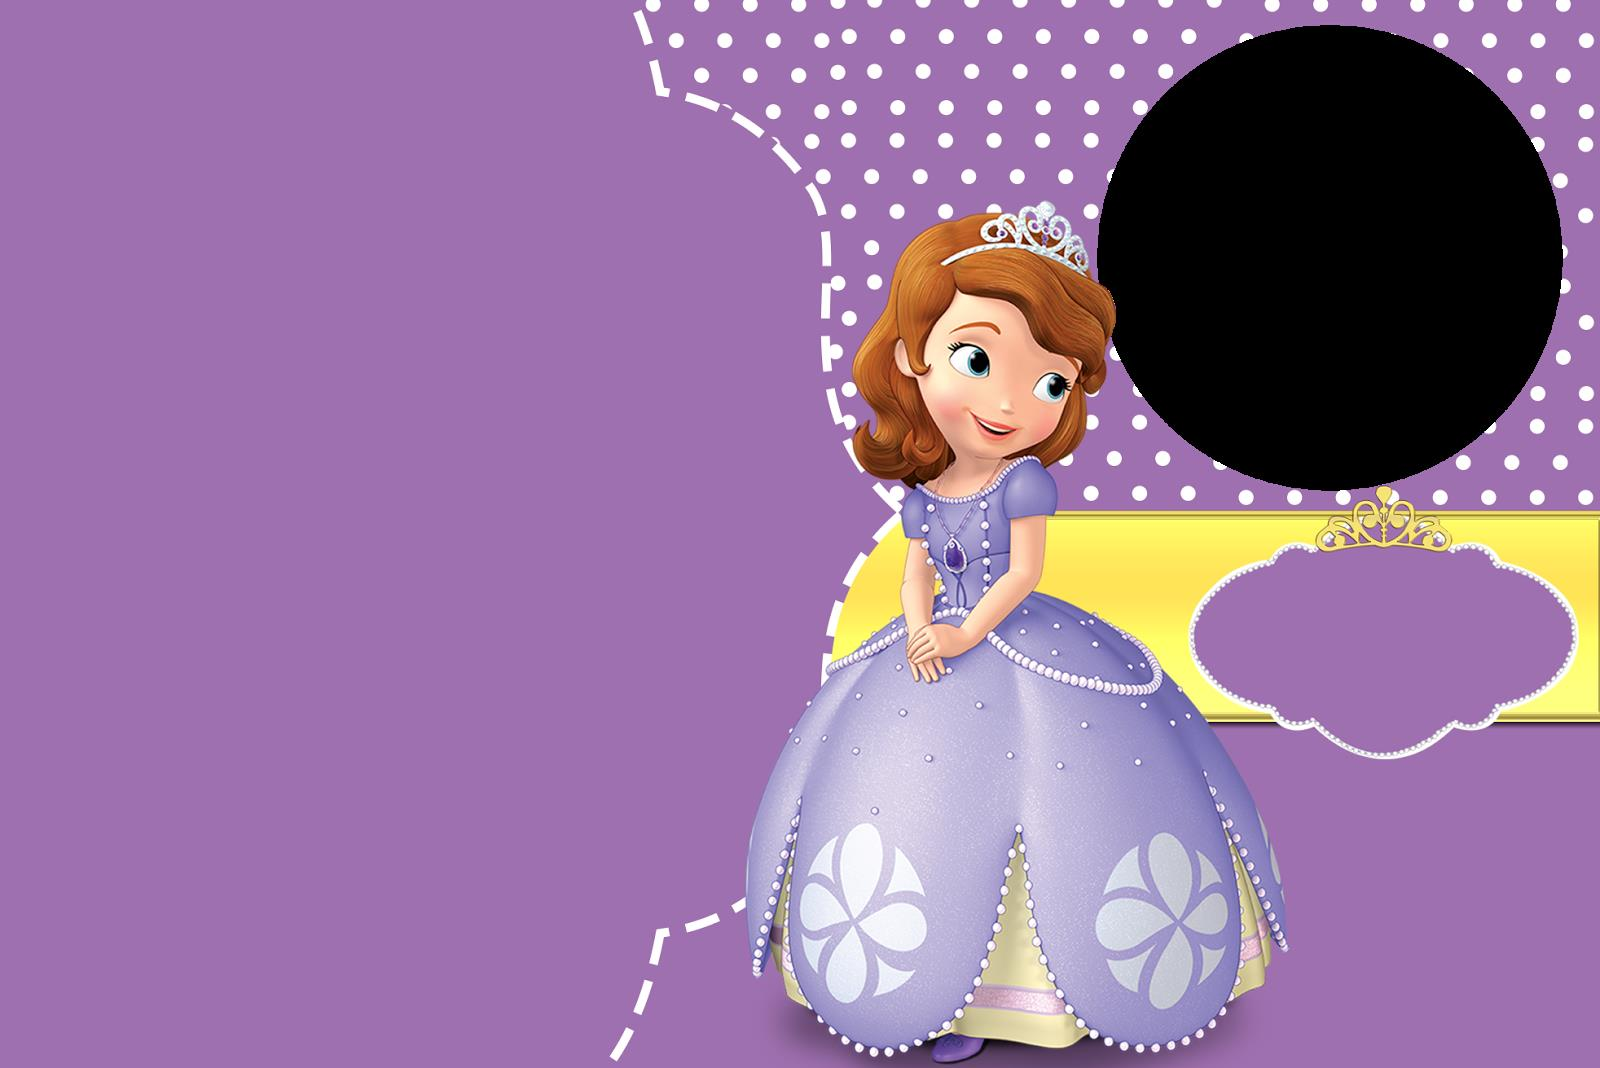 sofia the first birthday background ; Sofia-the-First-Birthday-Invitations-Etsy